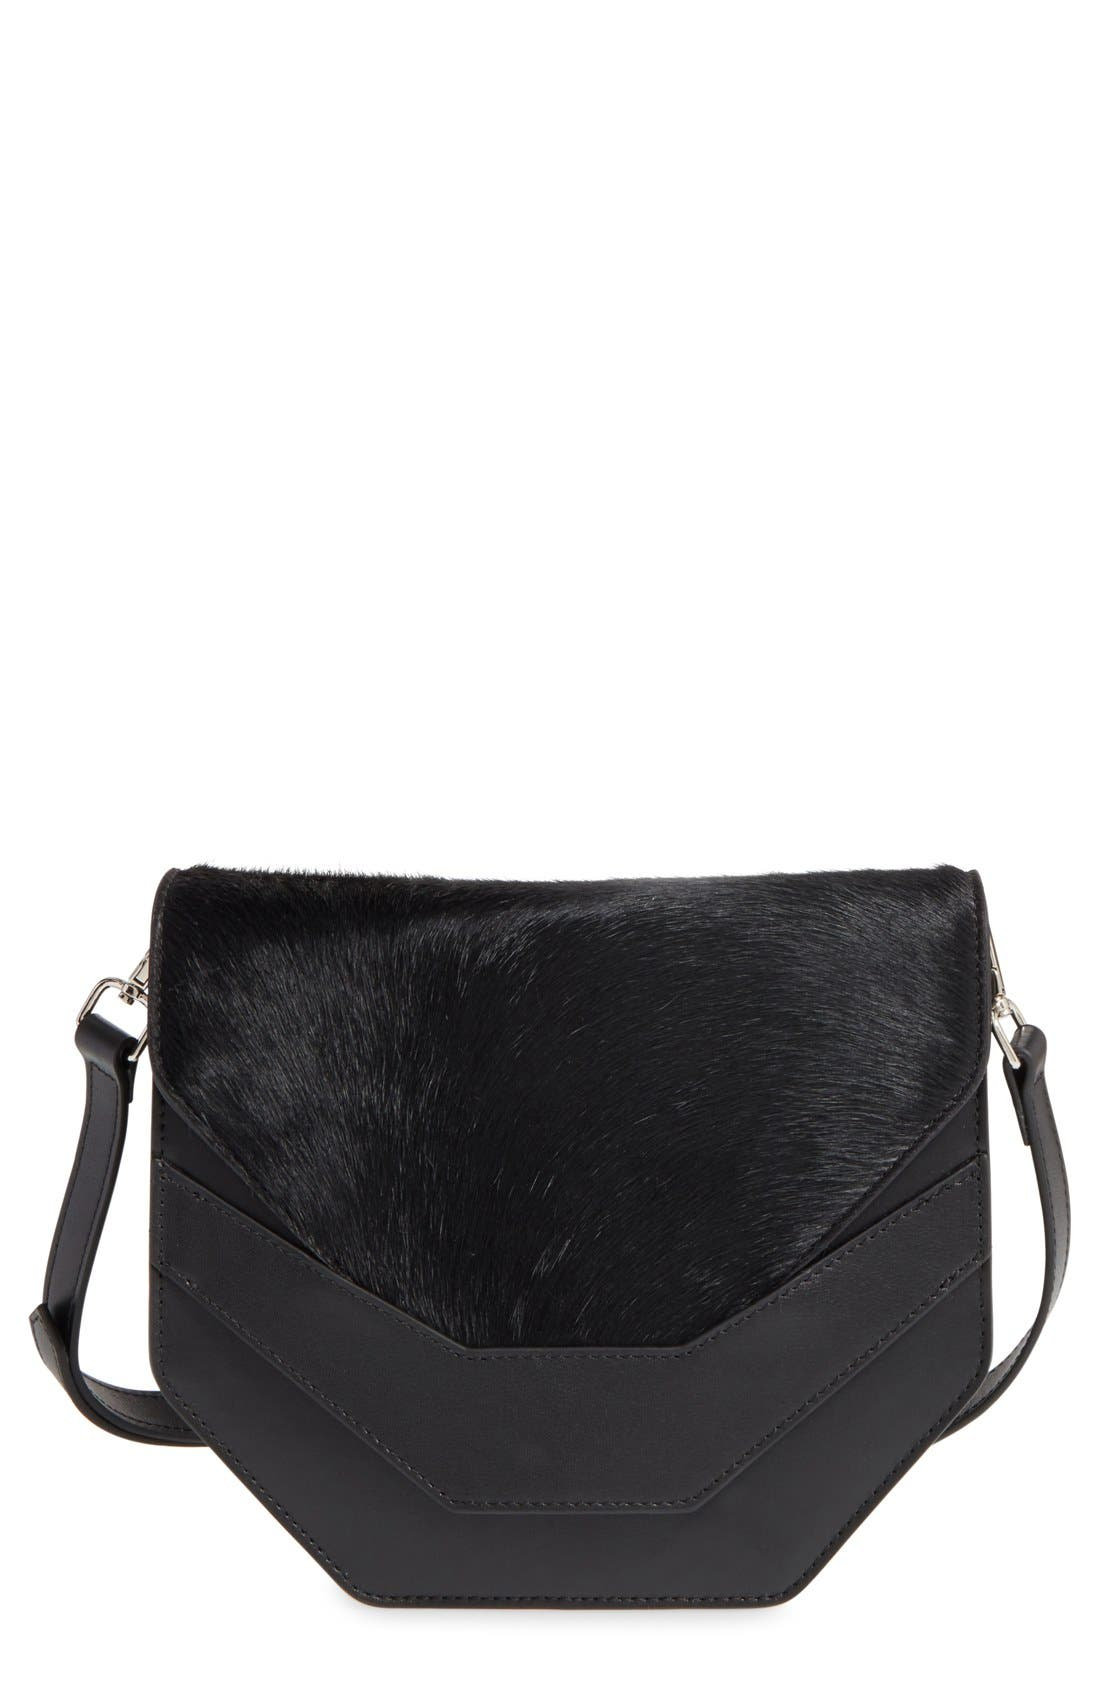 'The Eclipse' Crossbody Bag, Main, color, 001